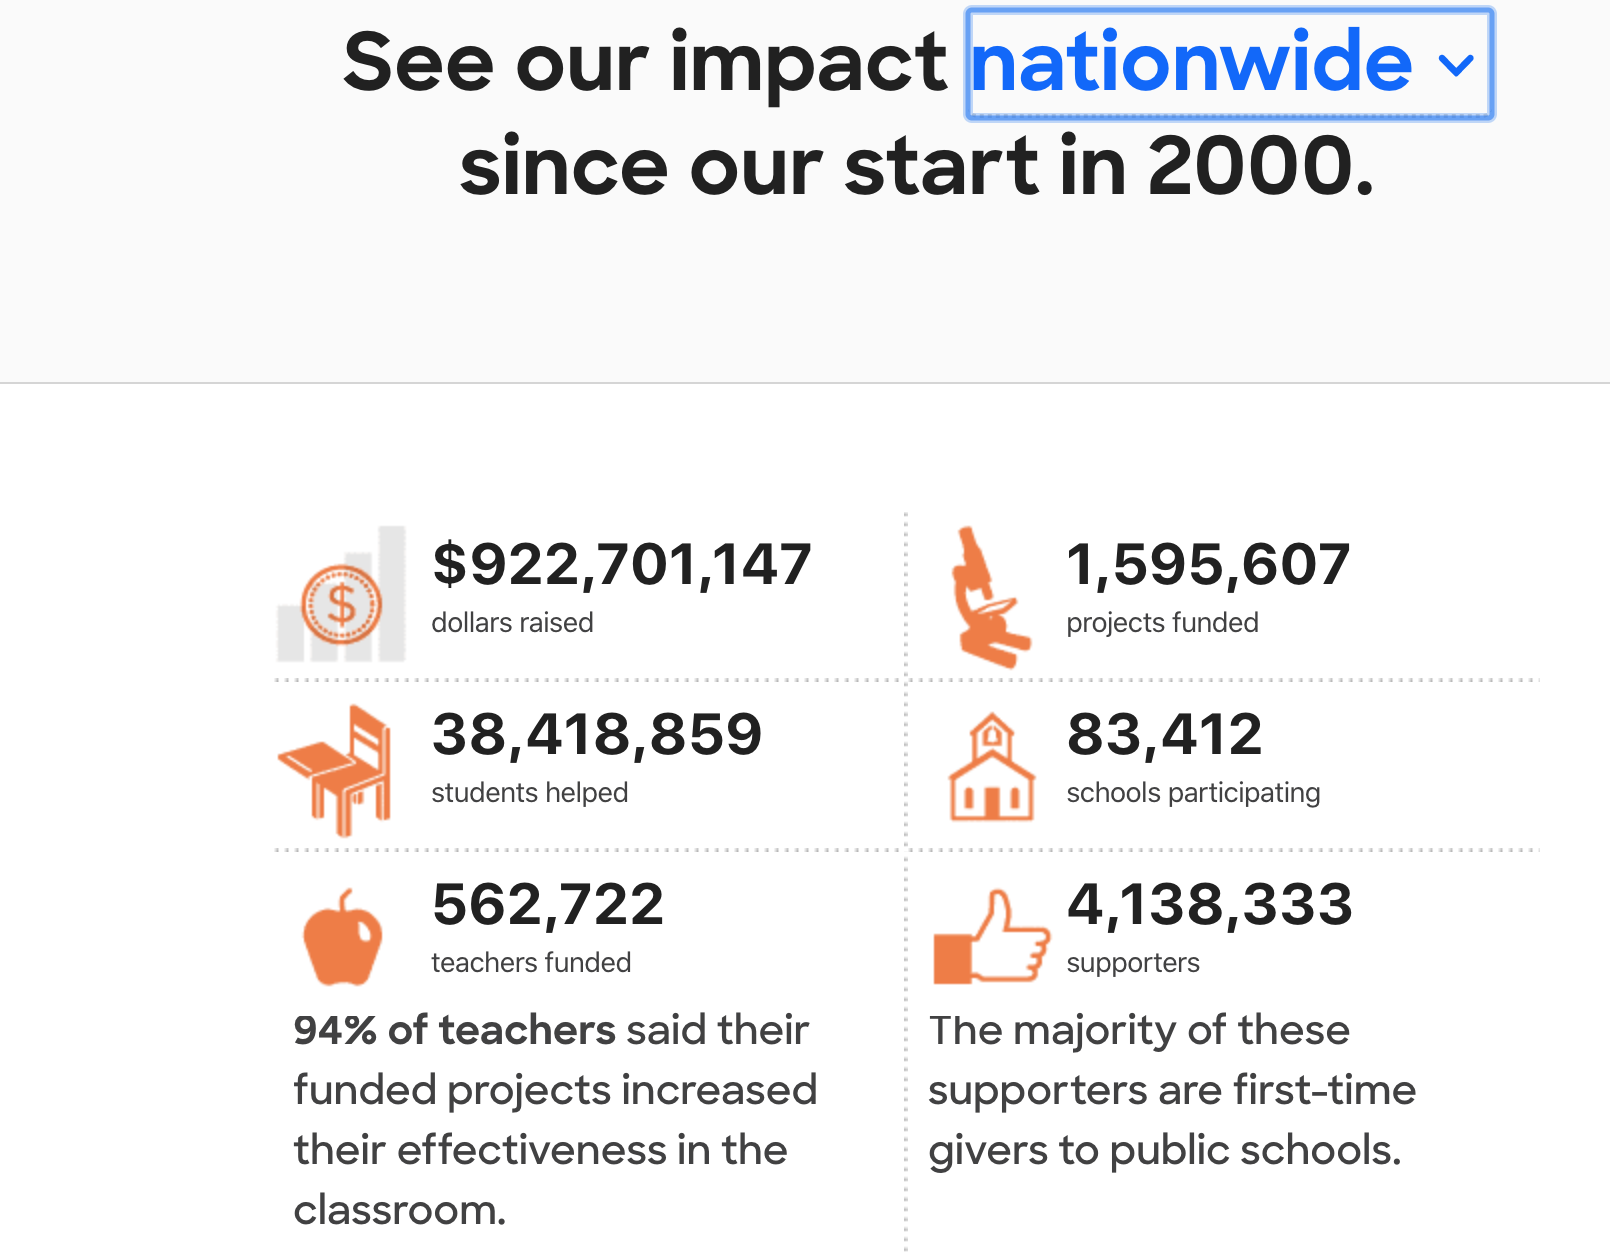 DonorsChoose nationwide impact since their start in 2000.